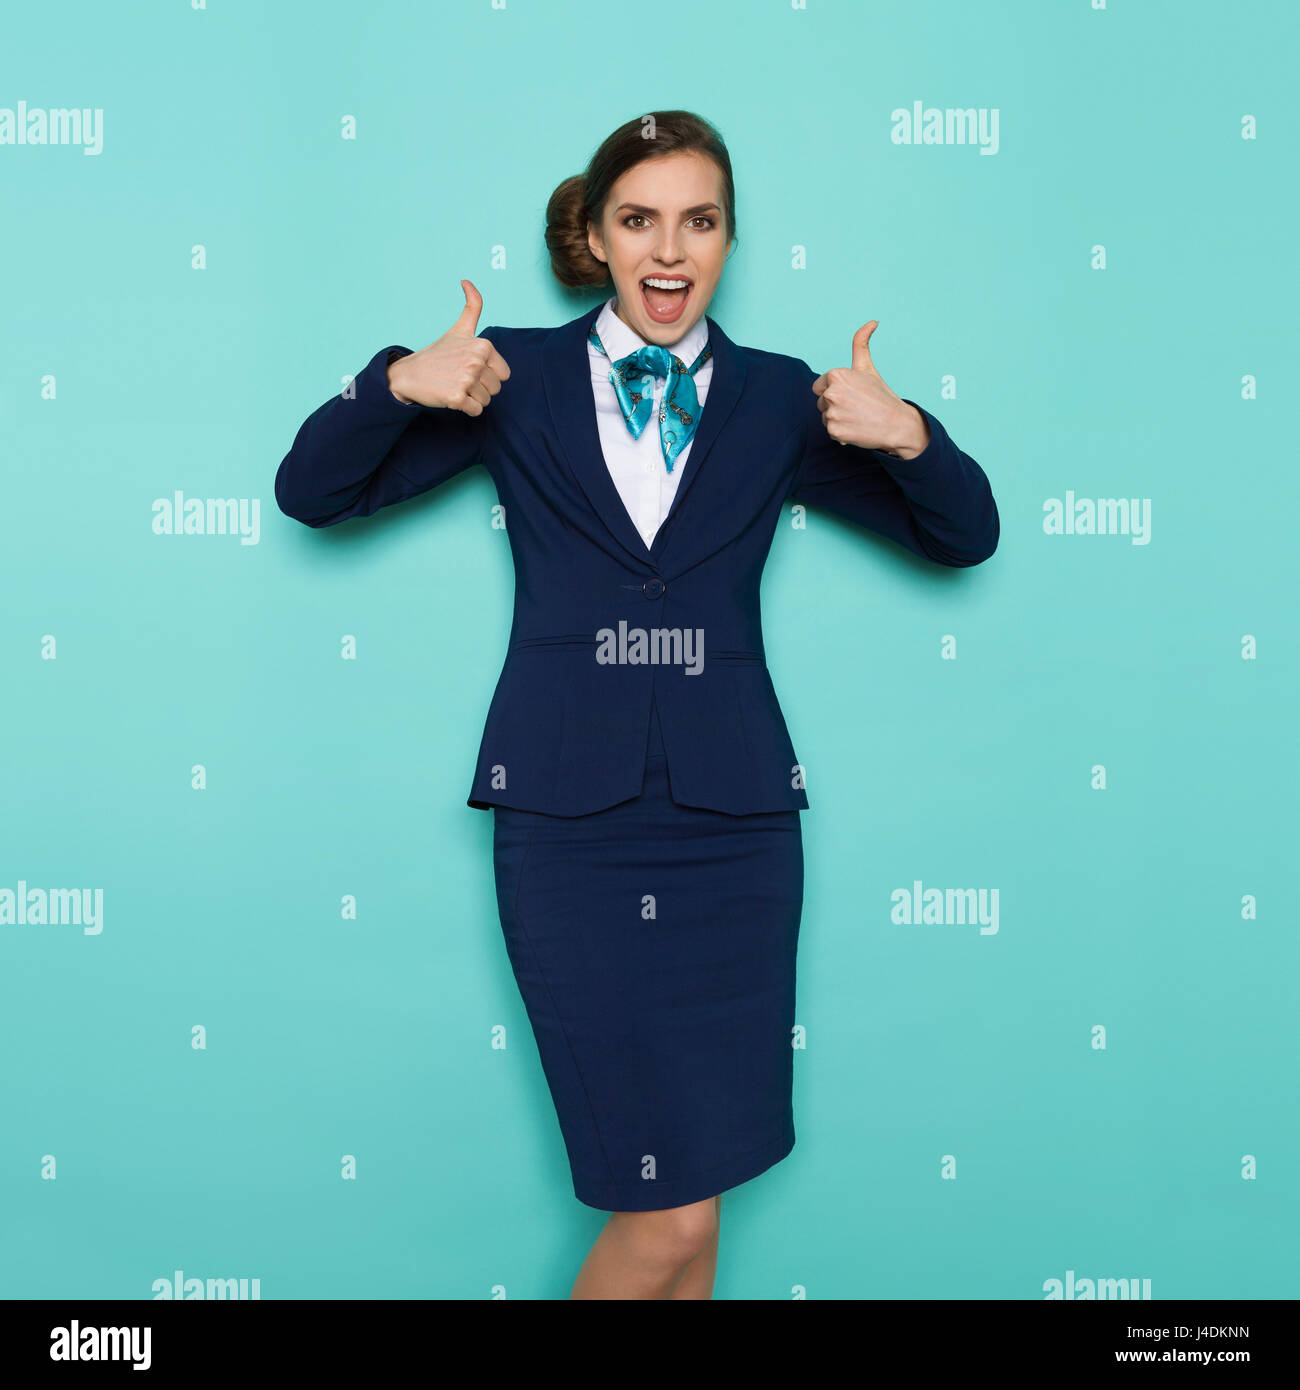 Excited stewardess in blue formal wear is standing with hands raised, showing thumbs up, shouting and looking at - Stock Image